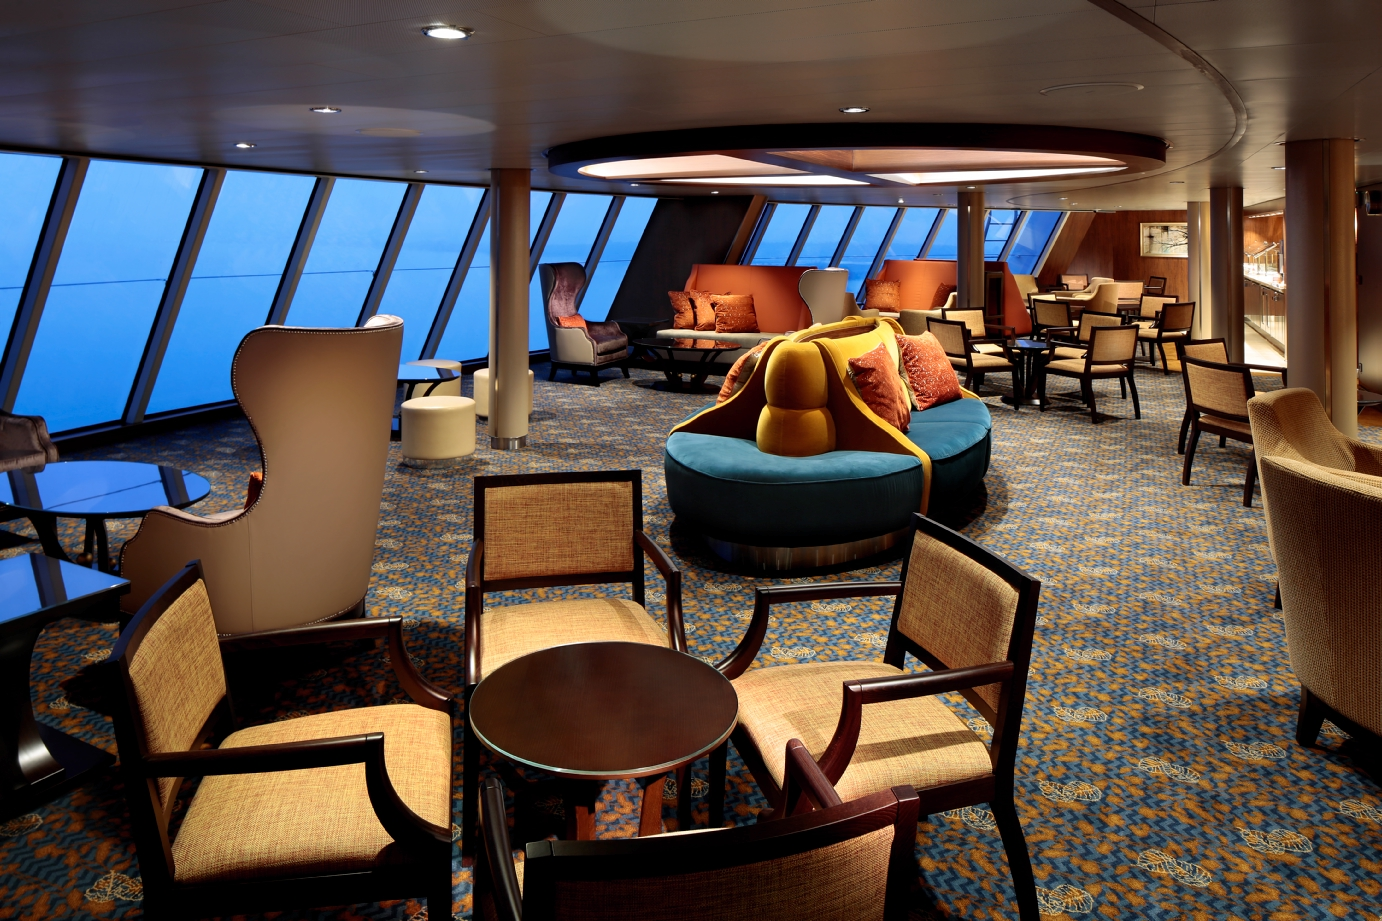 Royal Caribbean International Quantum of the Seas Interior Concierge Lounge.jpg